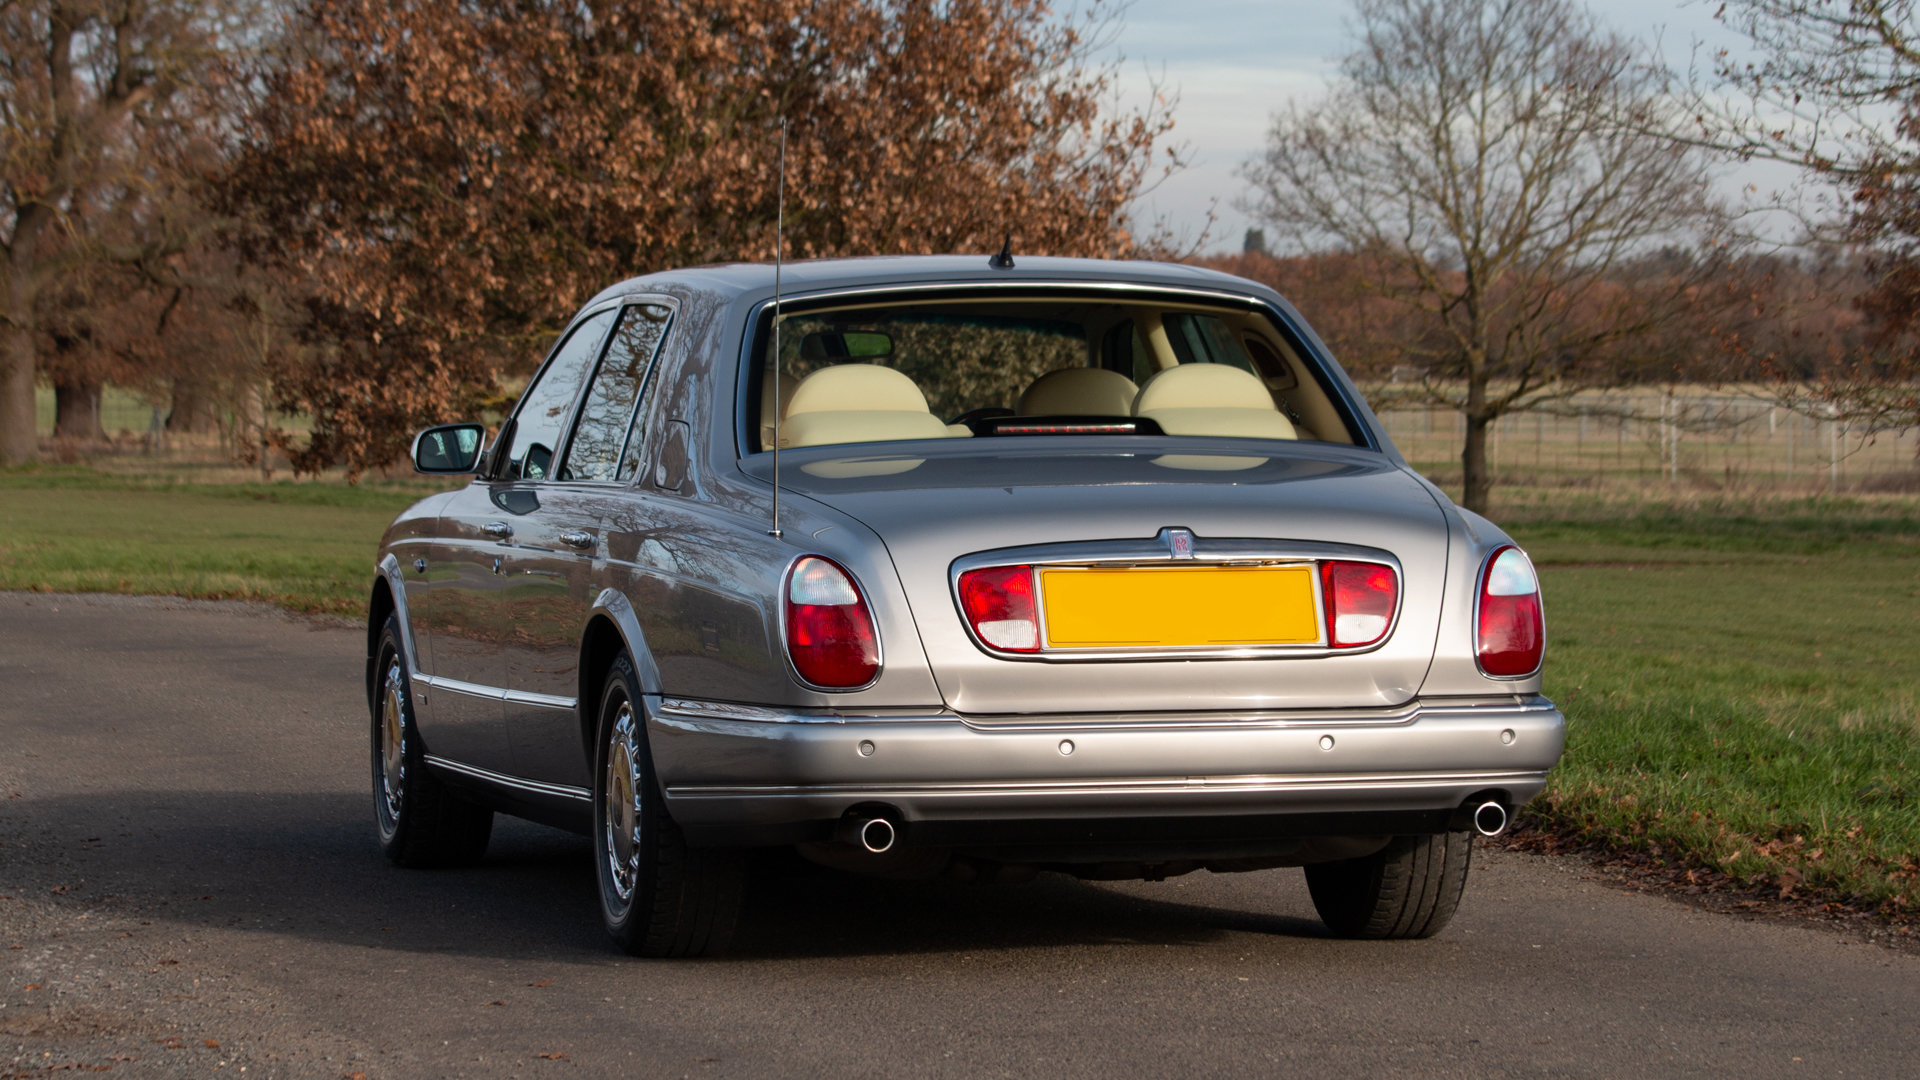 2002 Last of Line Rolls Royce Silver Seraph For Sale (picture 2 of 6)